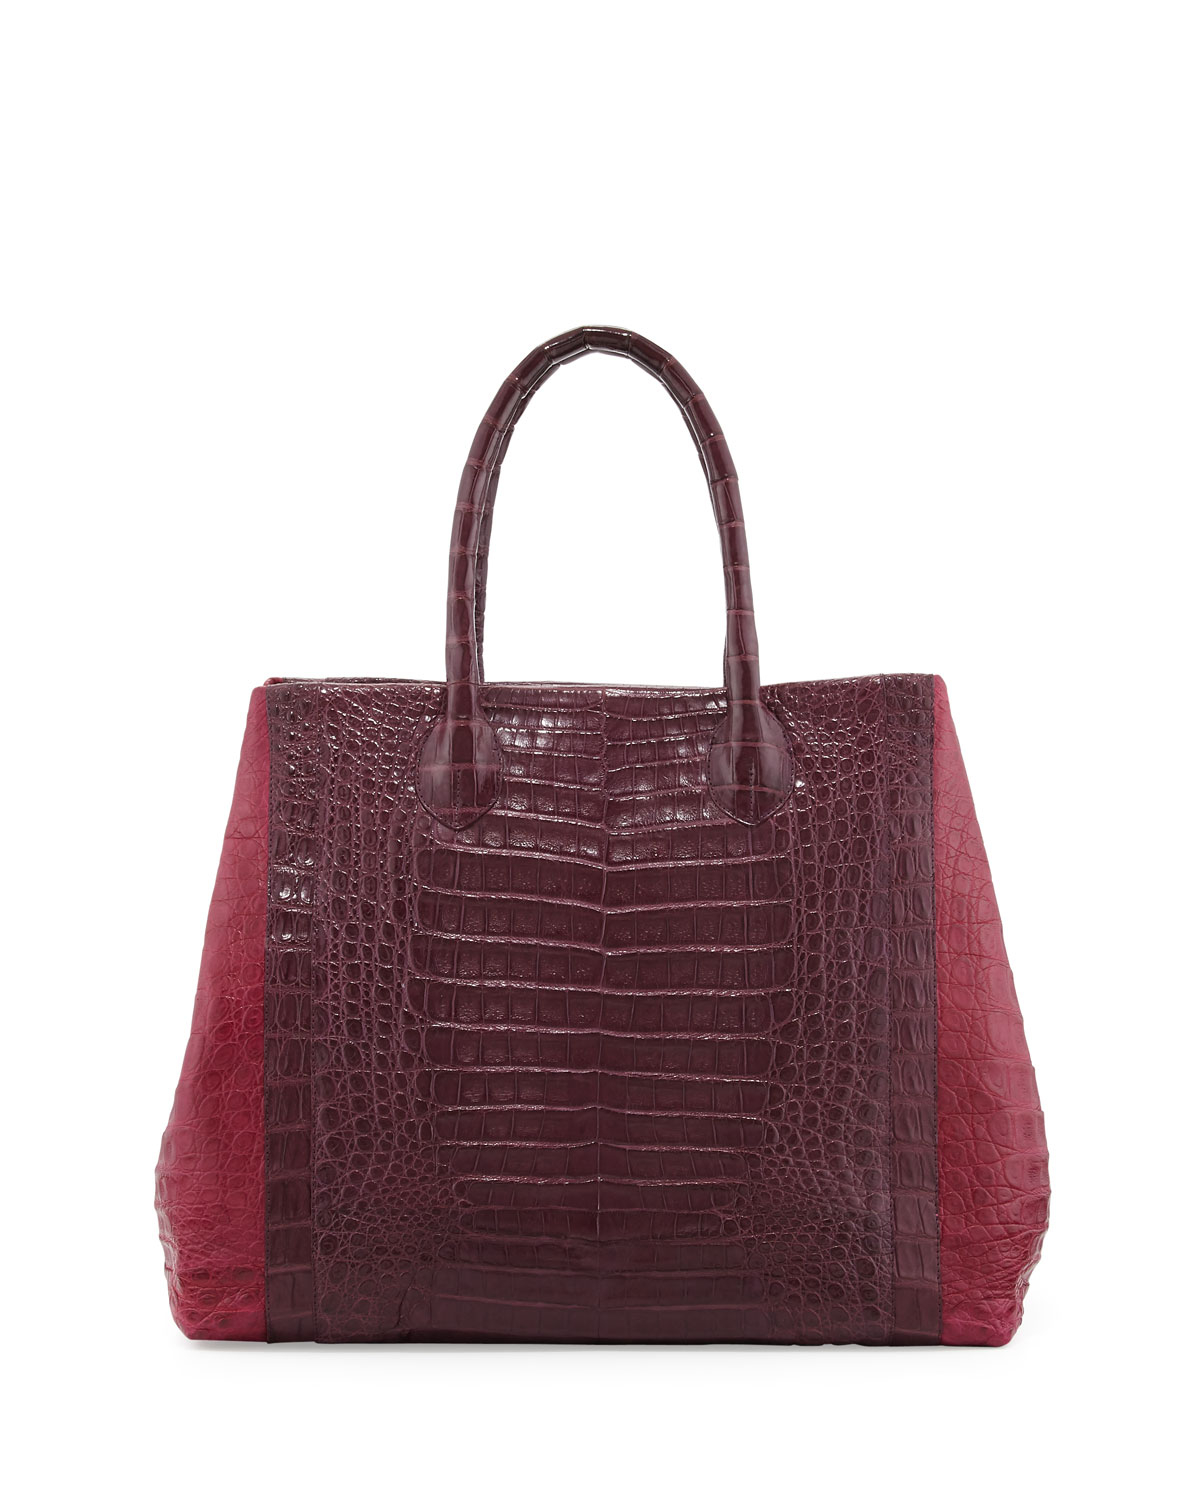 Nancy gonzalez large transformer crocodile tote in red for Nancy gonzalez crocodile tote